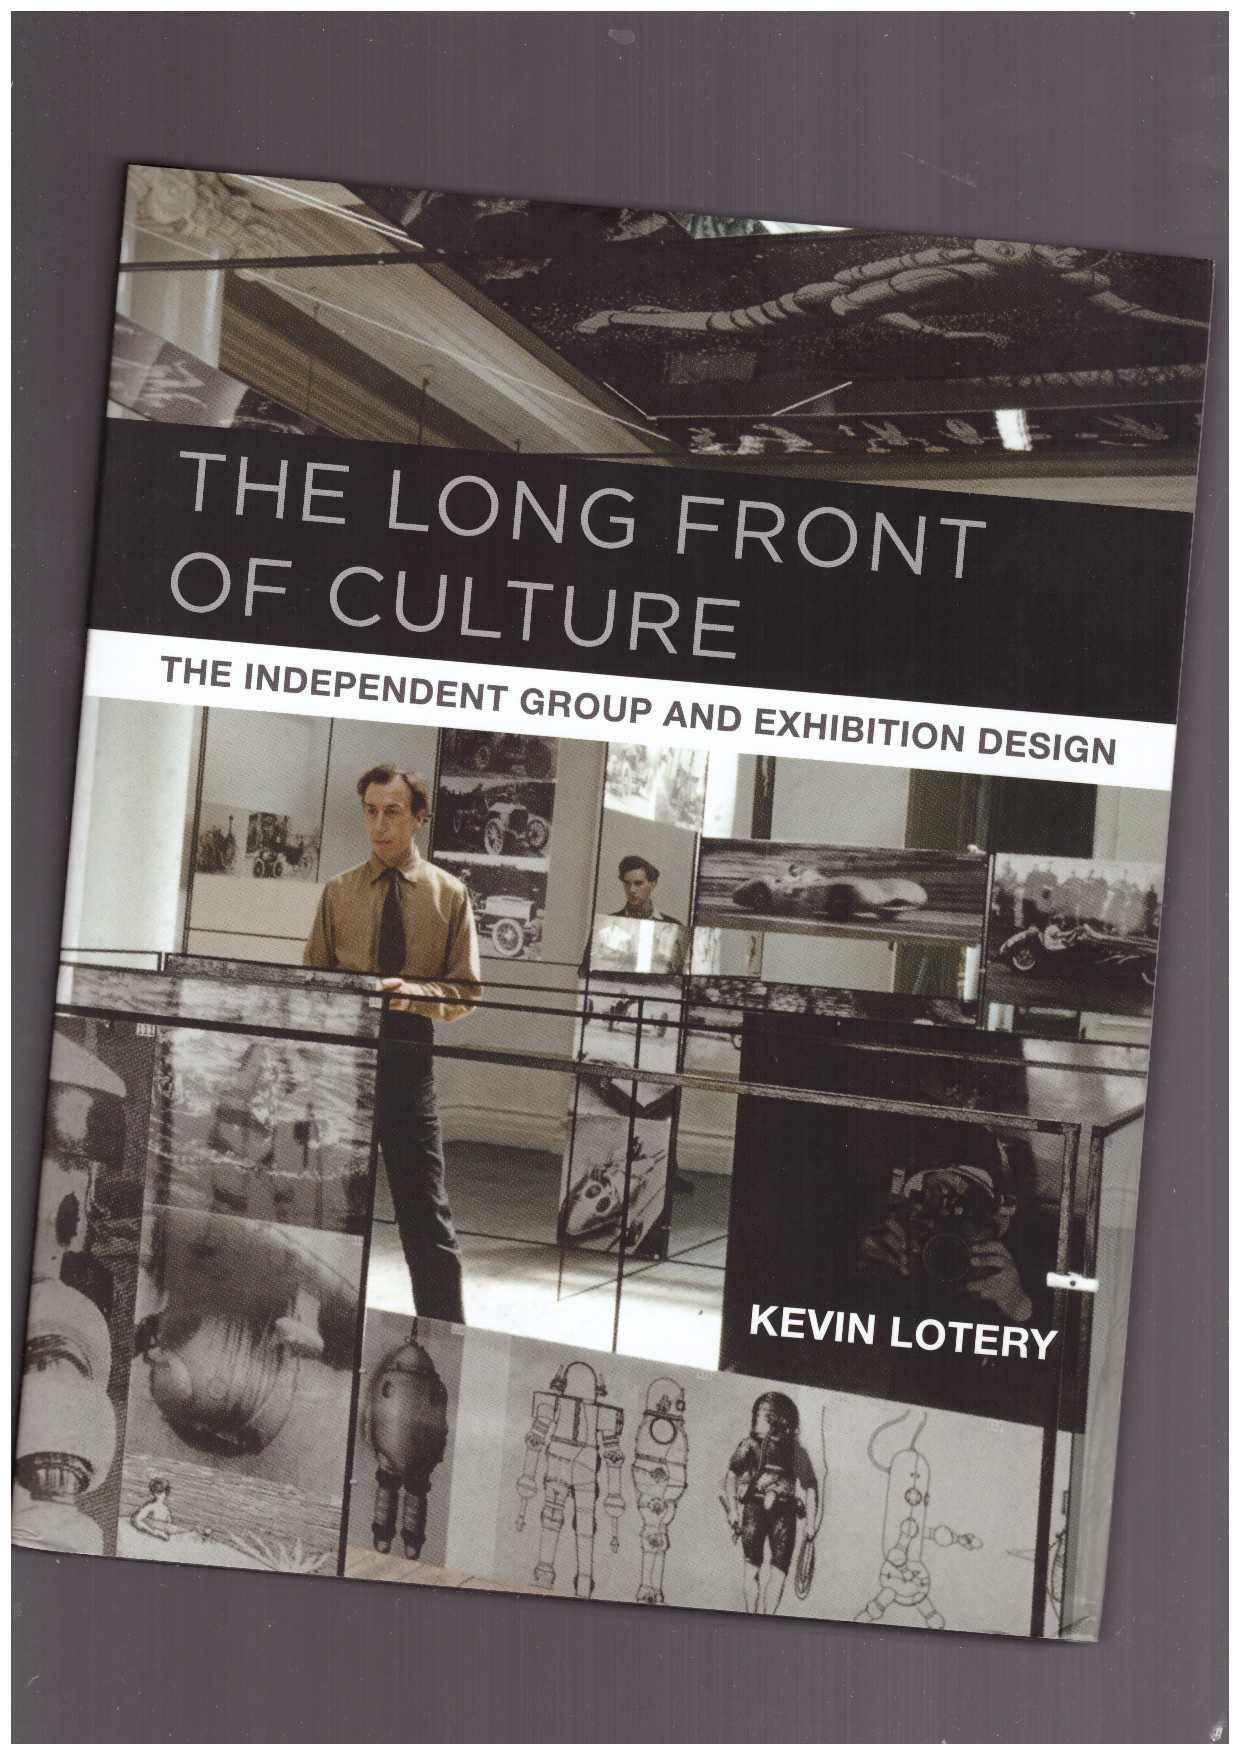 LOTERY, Kevin (ed.) - The Long Front of Culture. The Independent Group and Exhibition Design